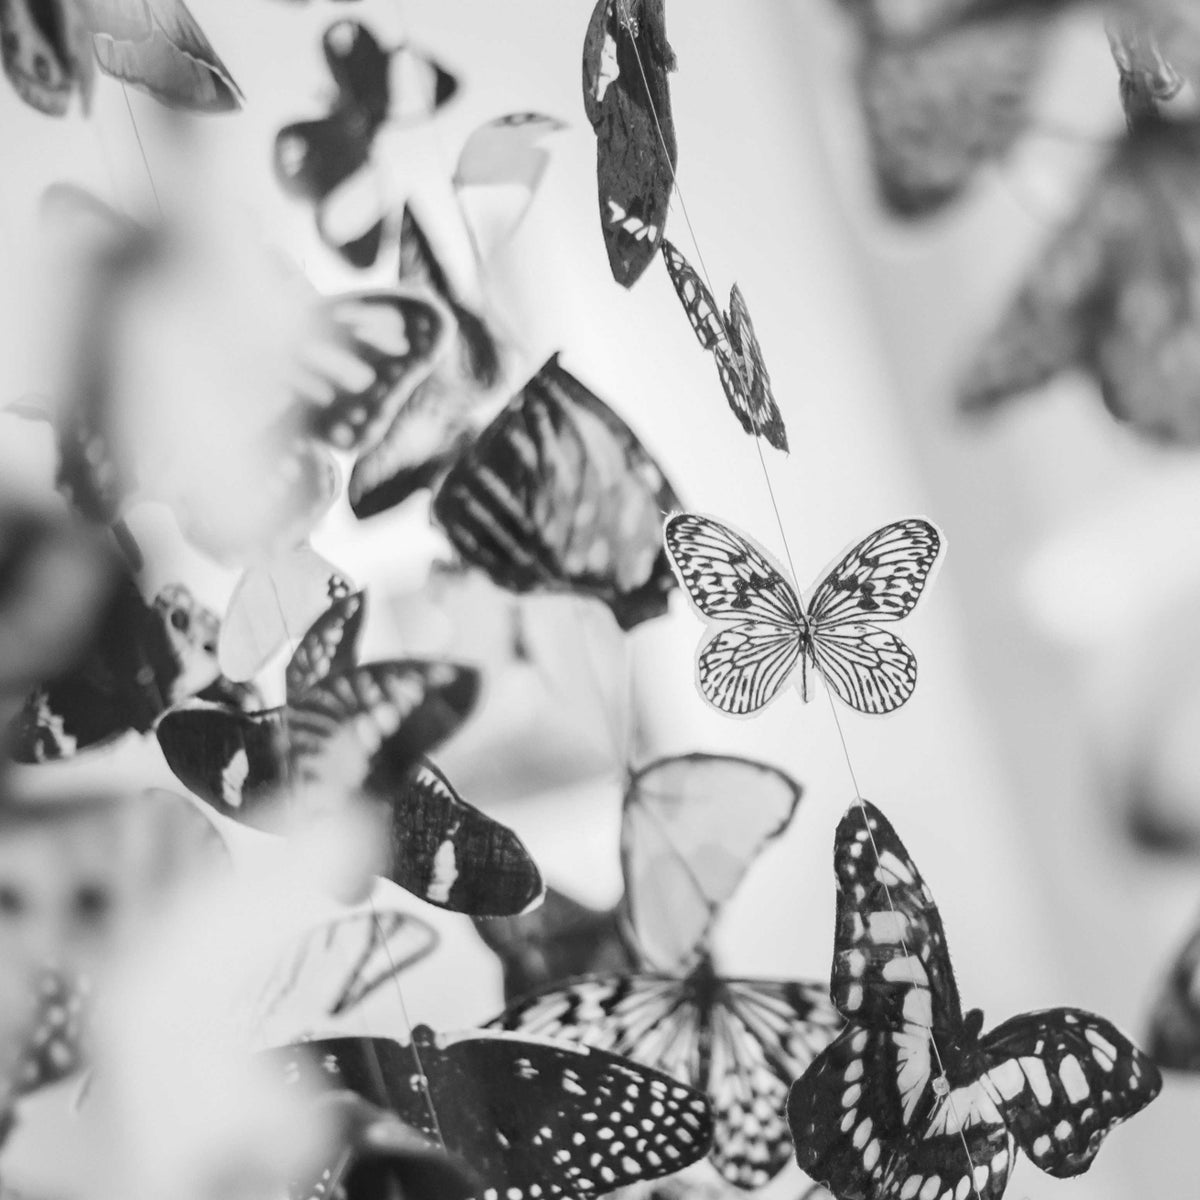 Black and white butterflies flying together